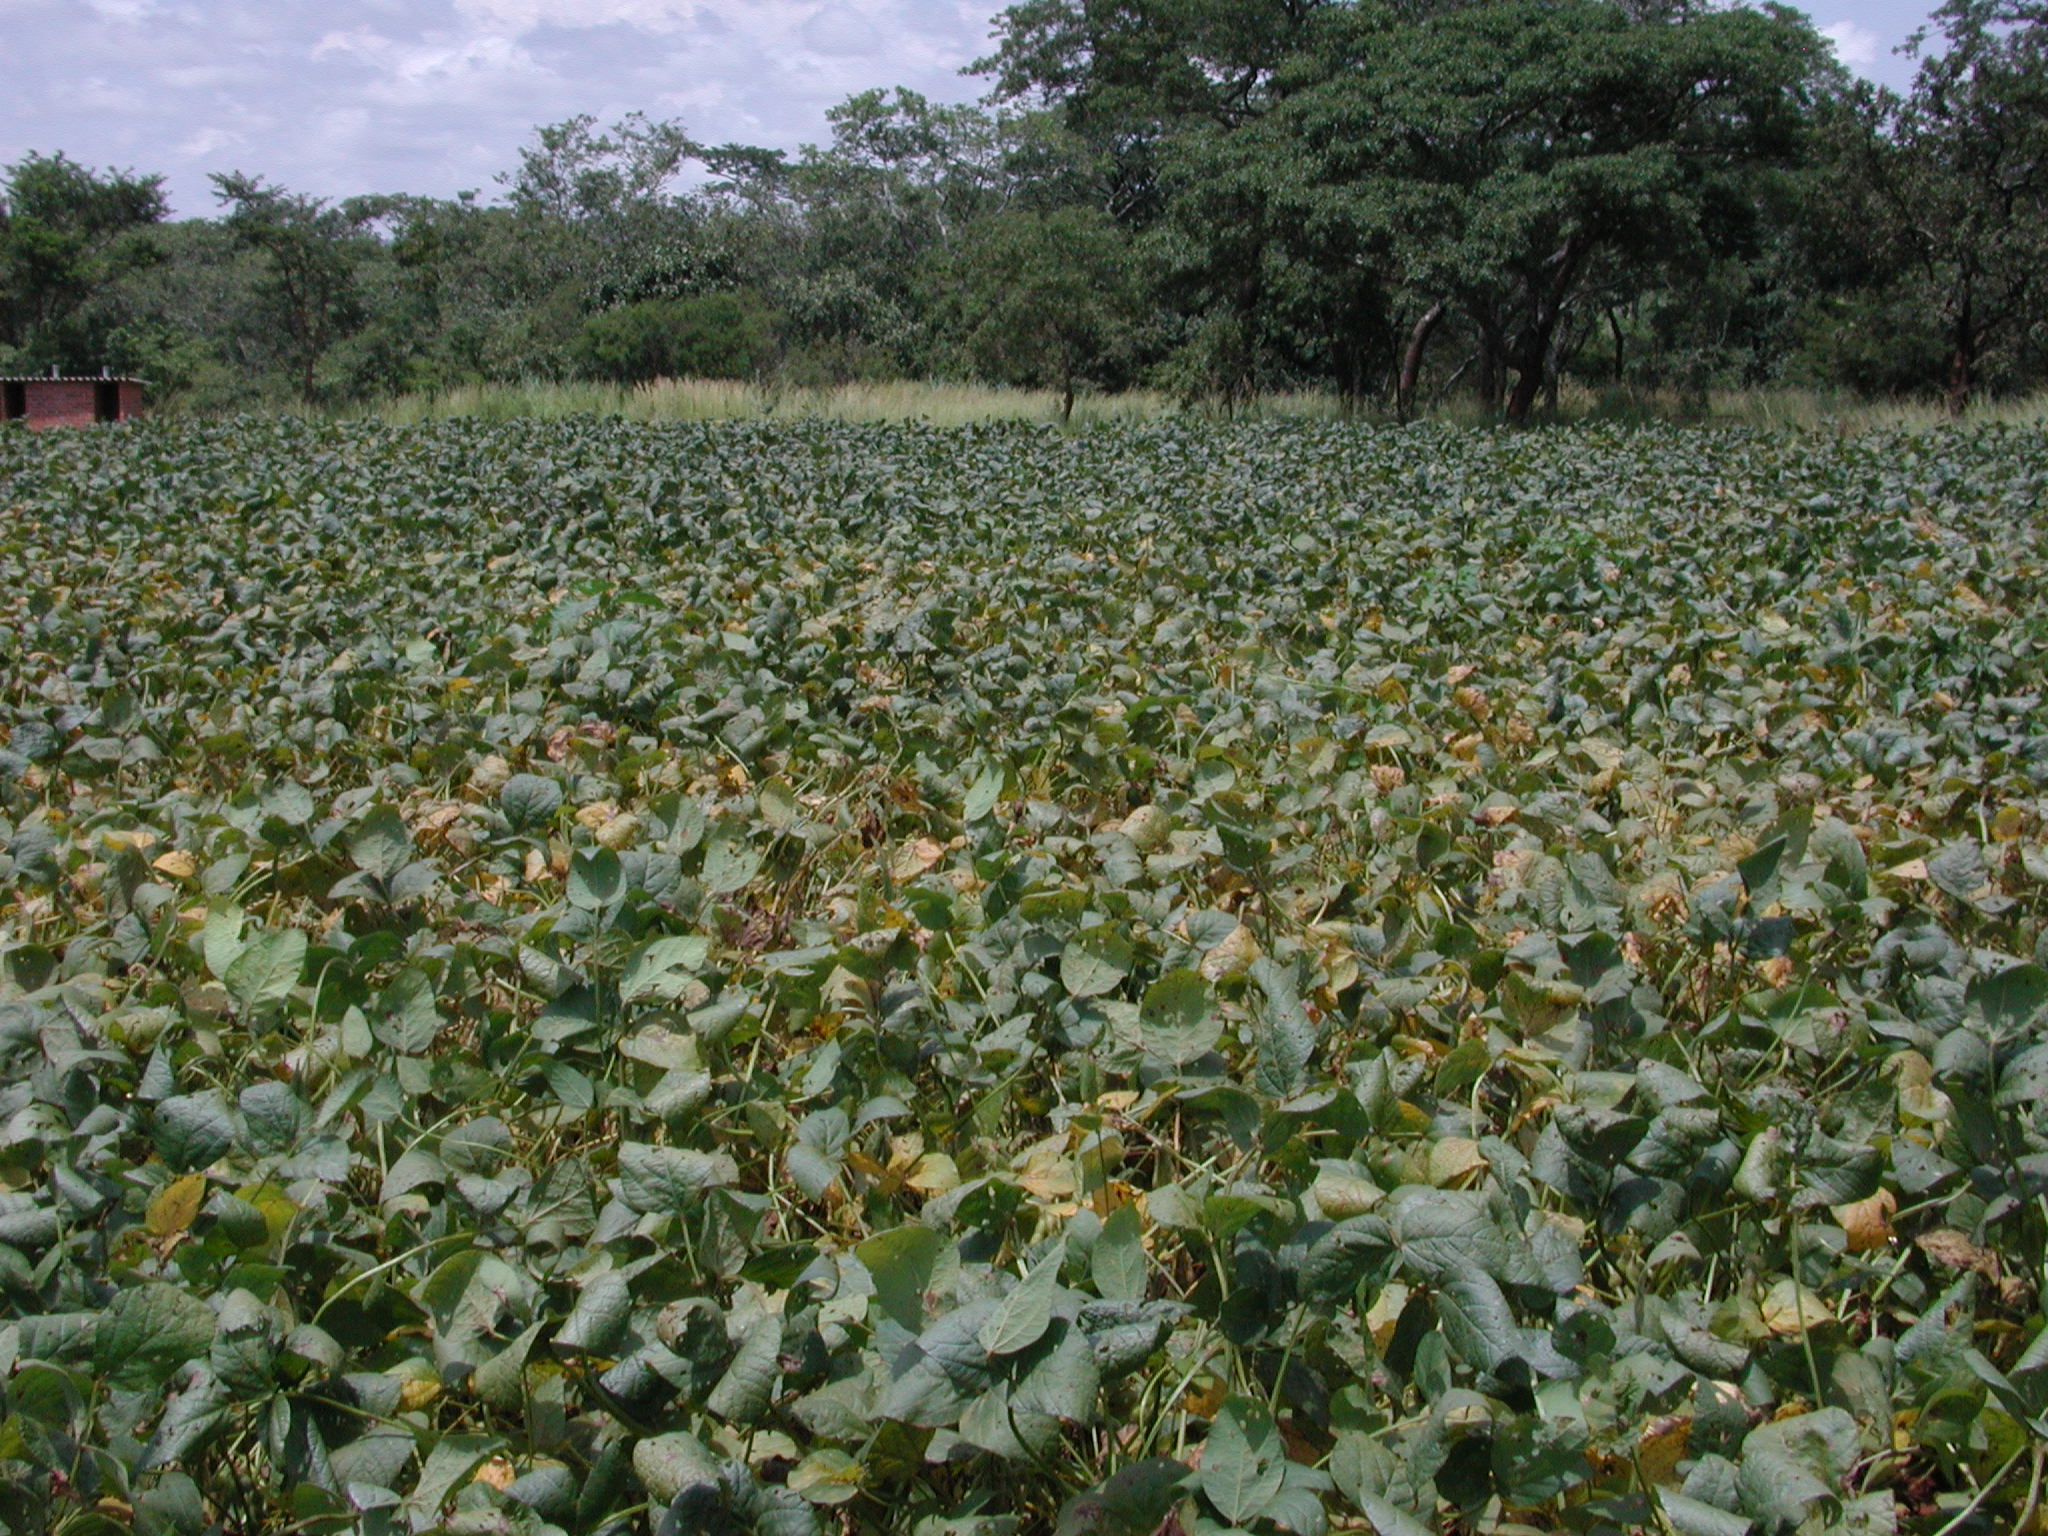 Patch of soybean plants with soybean rust.